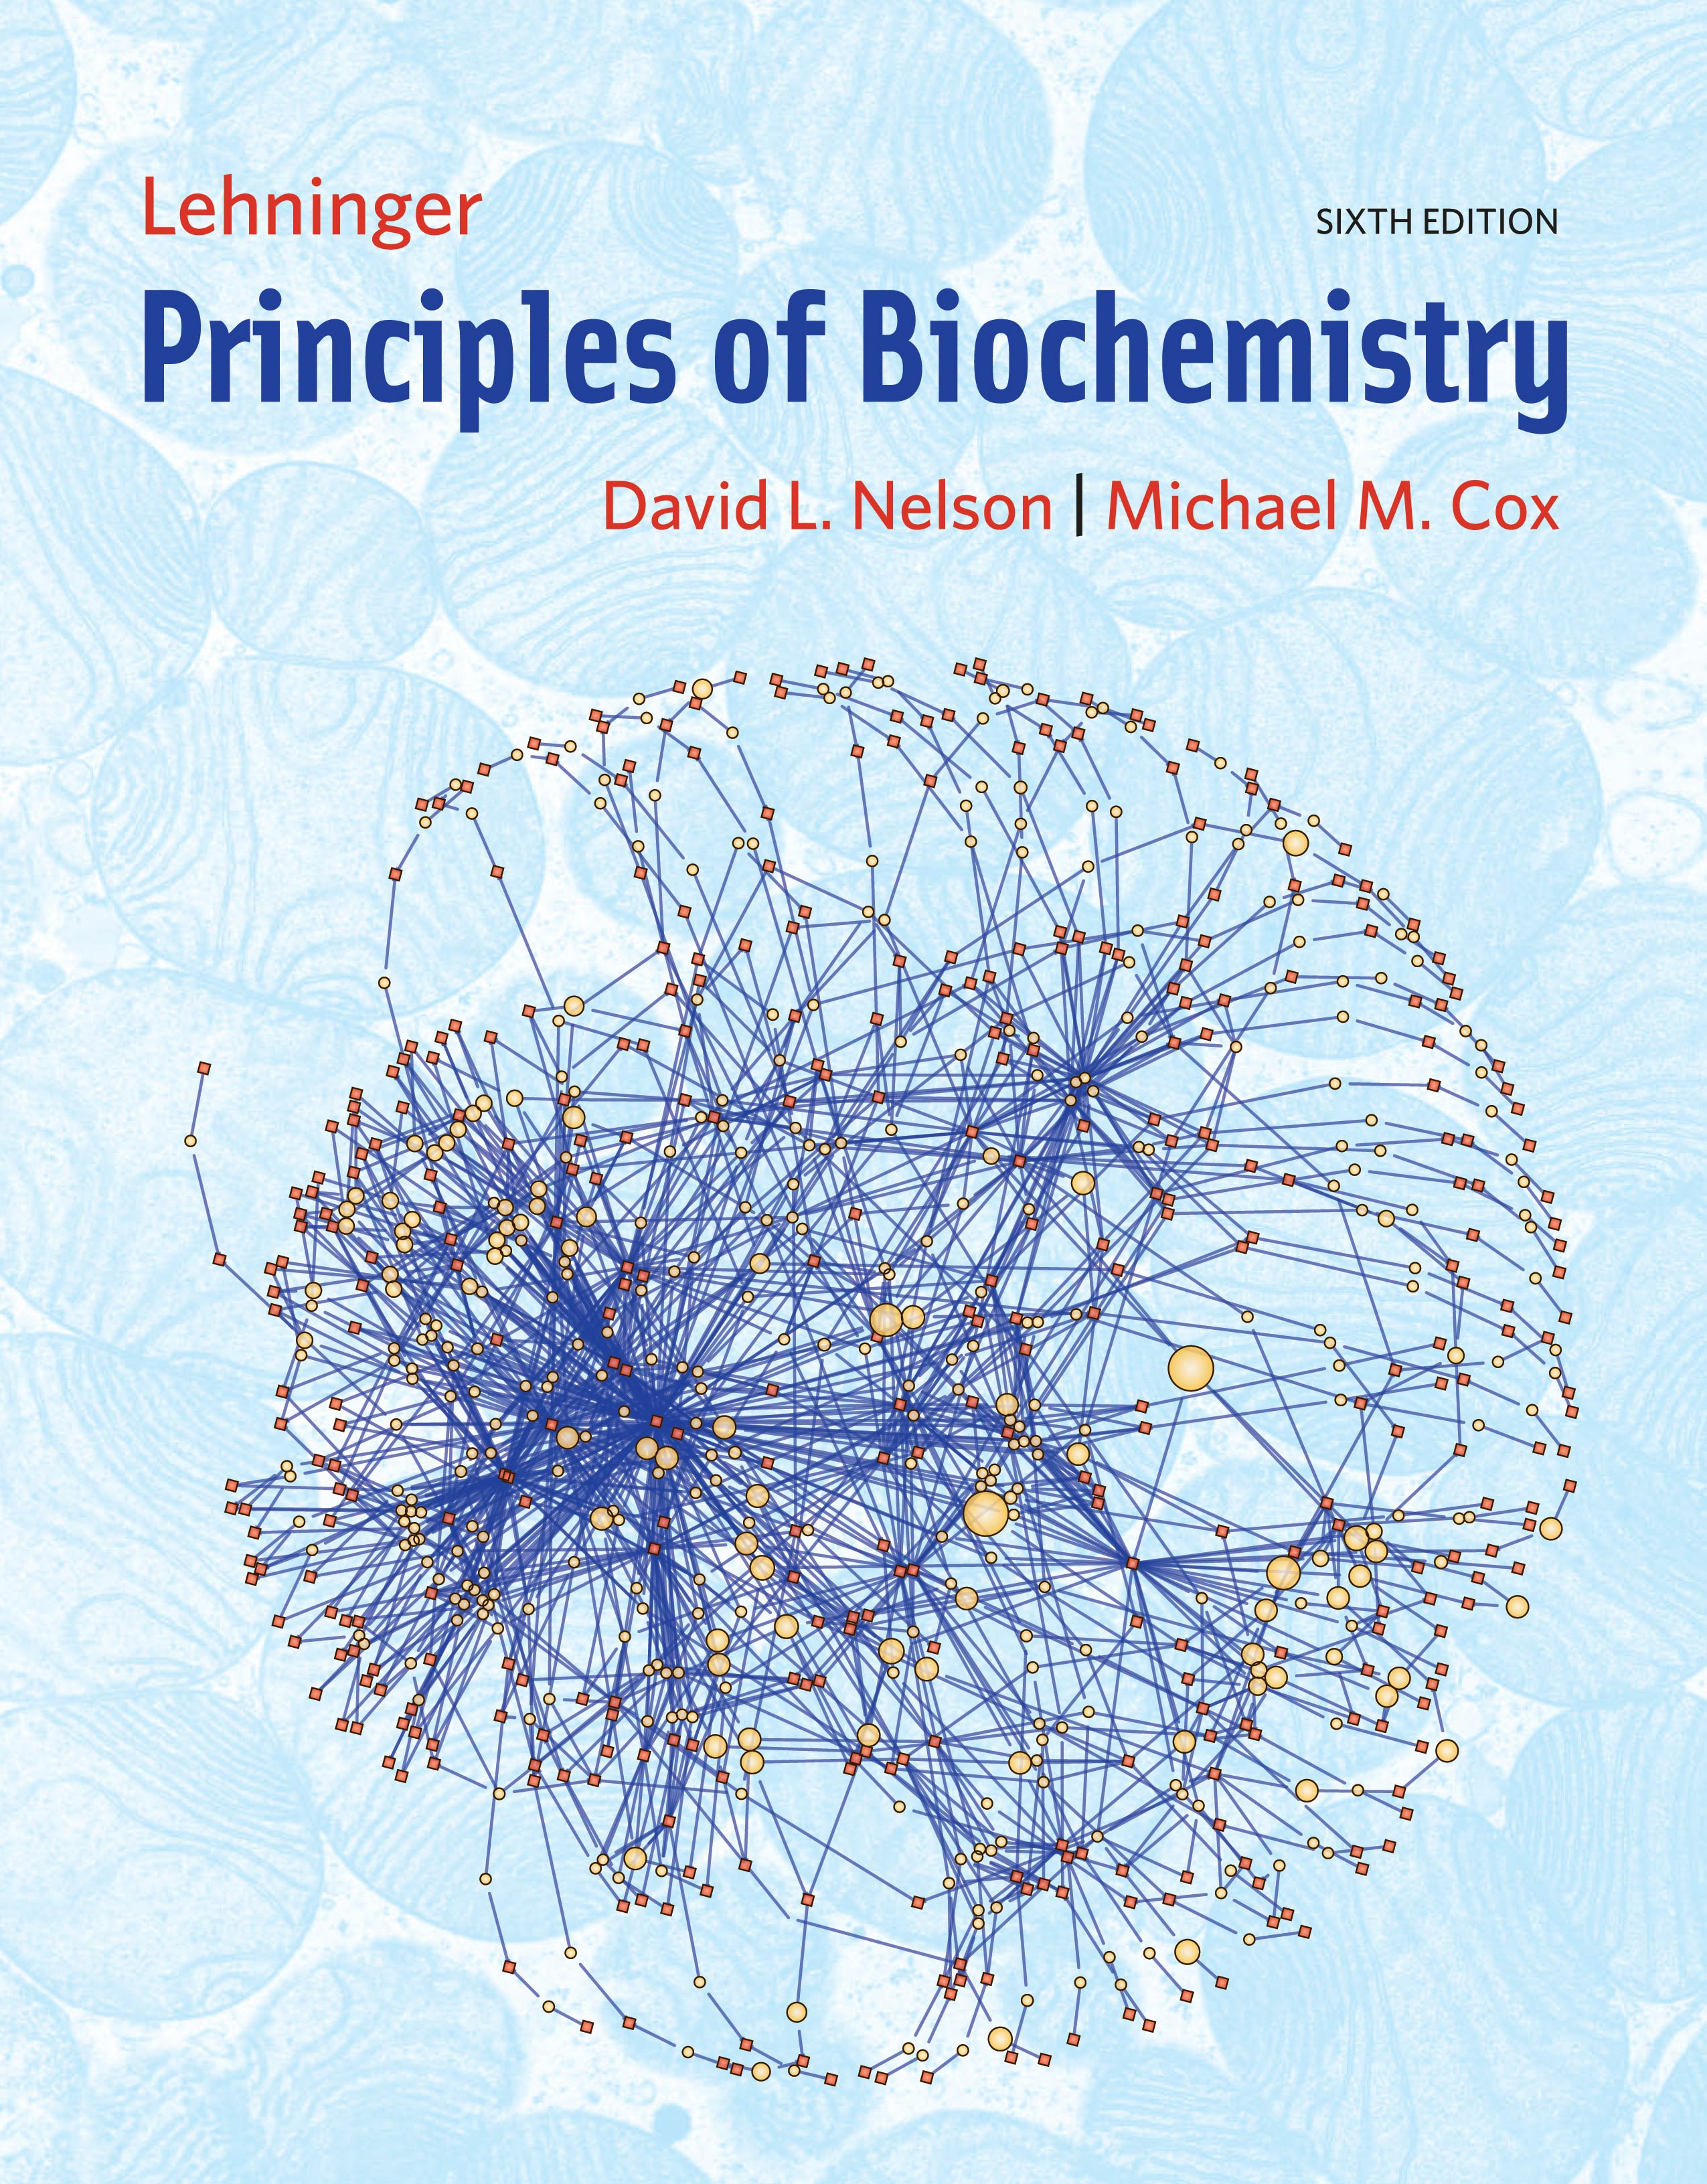 Launchpad for nelsons principles of biochemistry twelve month download image fandeluxe Images